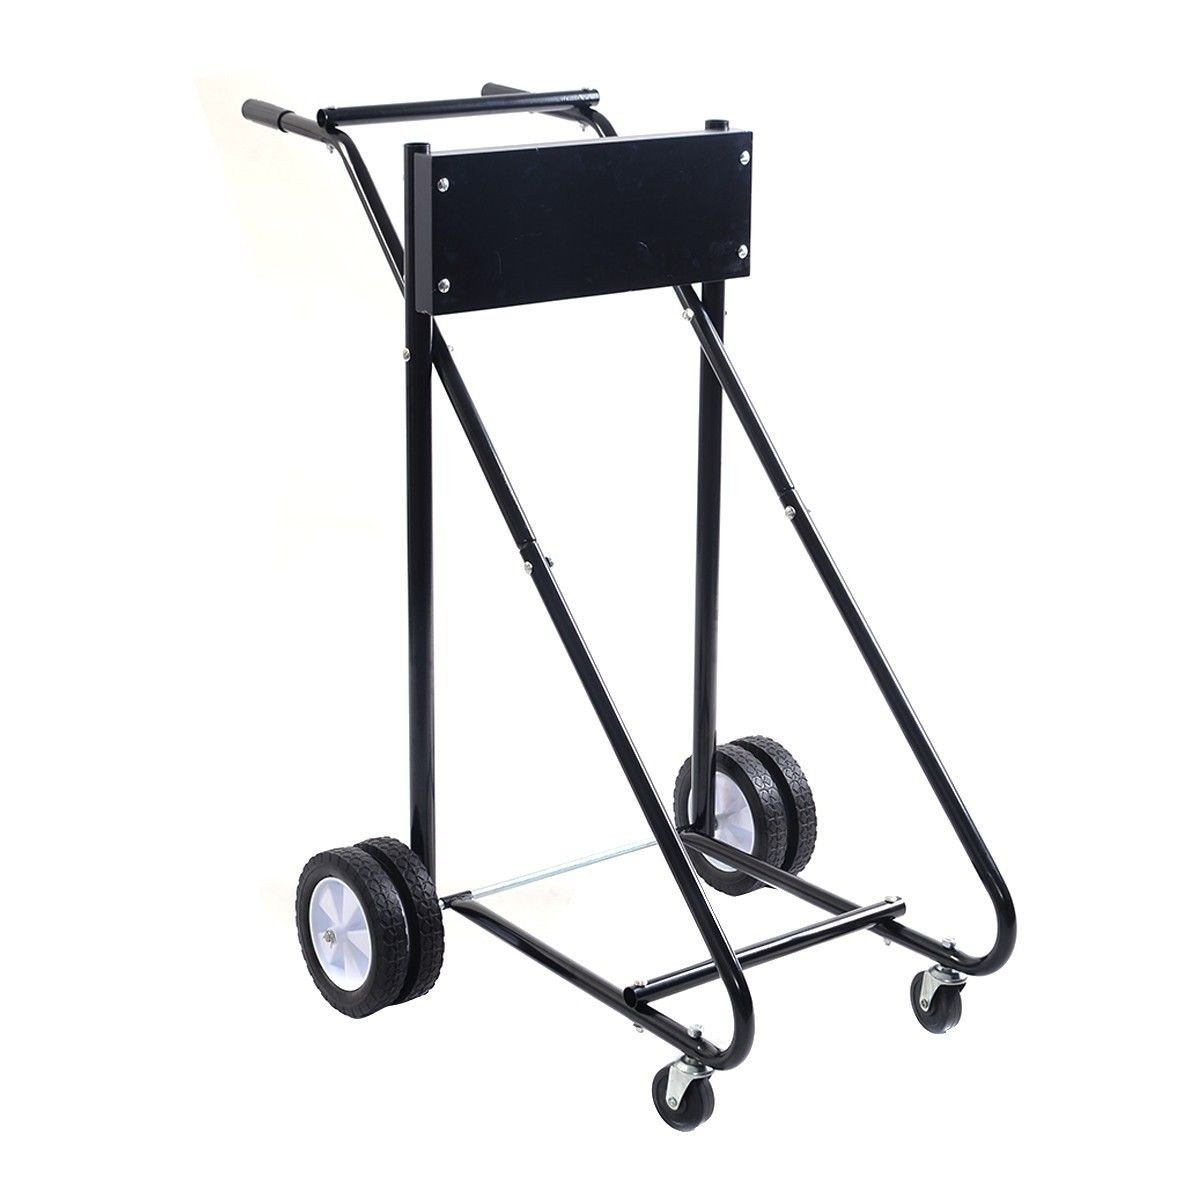 Carrier Cart Dolly Boat Motor Stand Trolley 315 lbs Outboard Storage Pro Heavy Duty MD Group